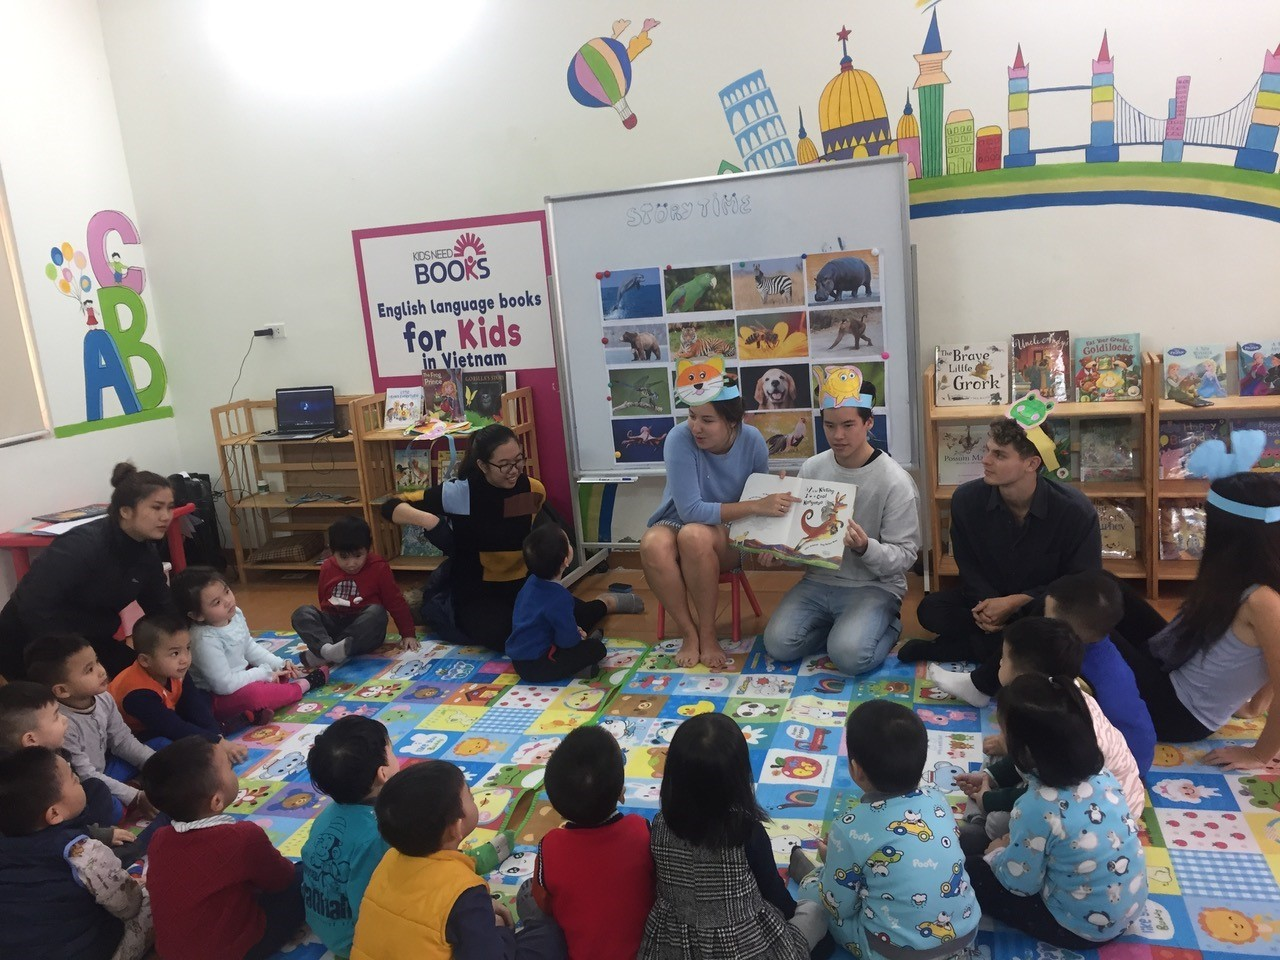 University of Sydney students (L-R) Louisa, Mike, Max and Natasha, leading story time with Vietnamese children at the Kids Needs Books social enterprise in Hanoi.